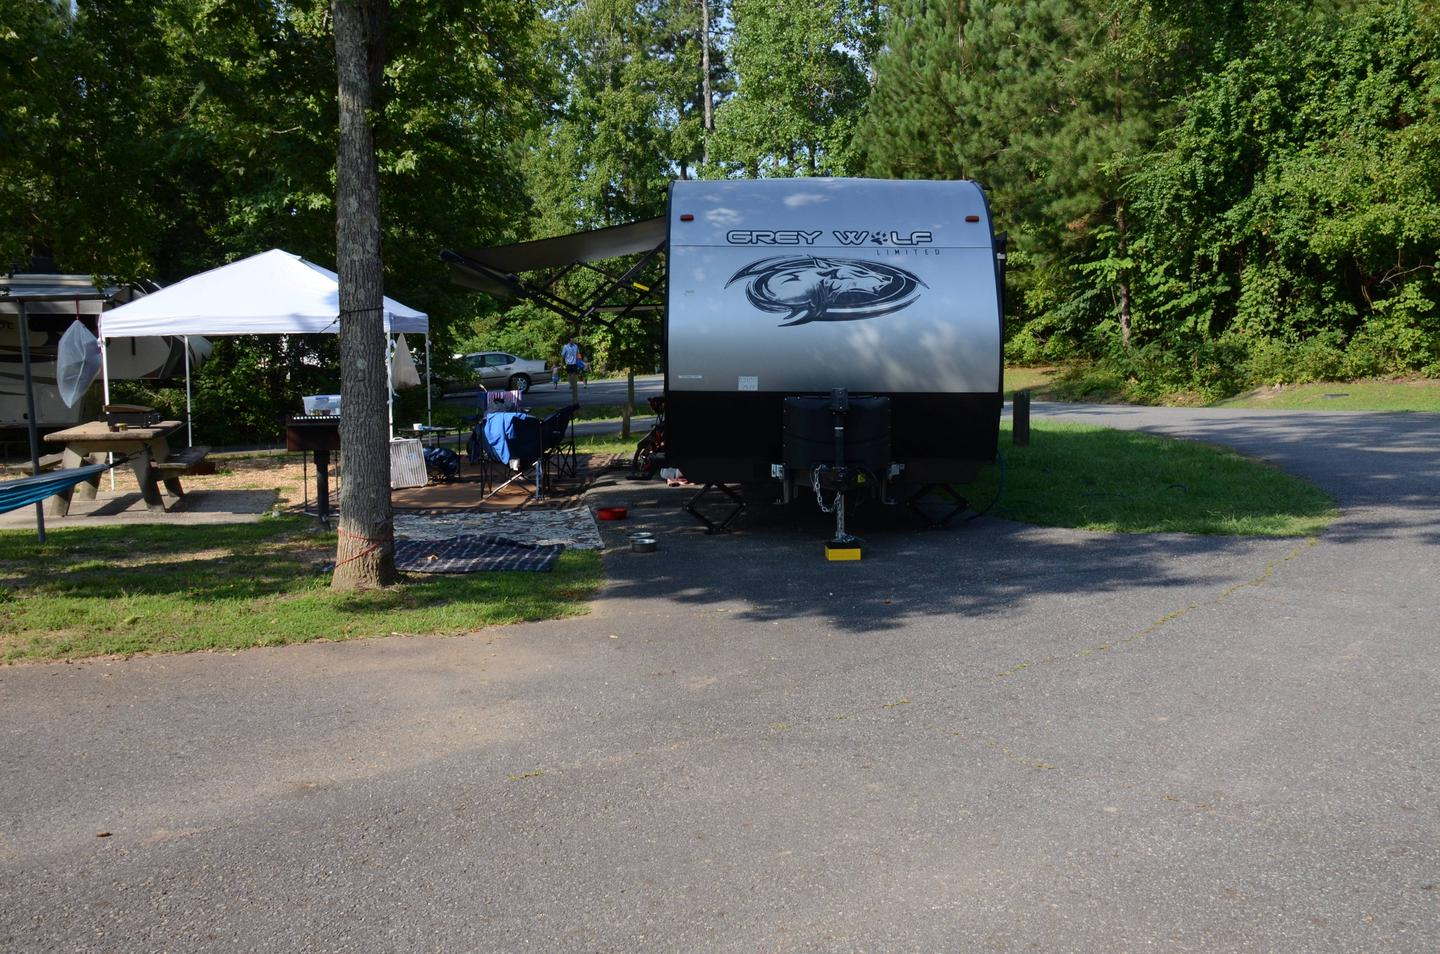 Pull-thru exit, driveway slope, awning-side clearance.Payne Campground, campsite 28.